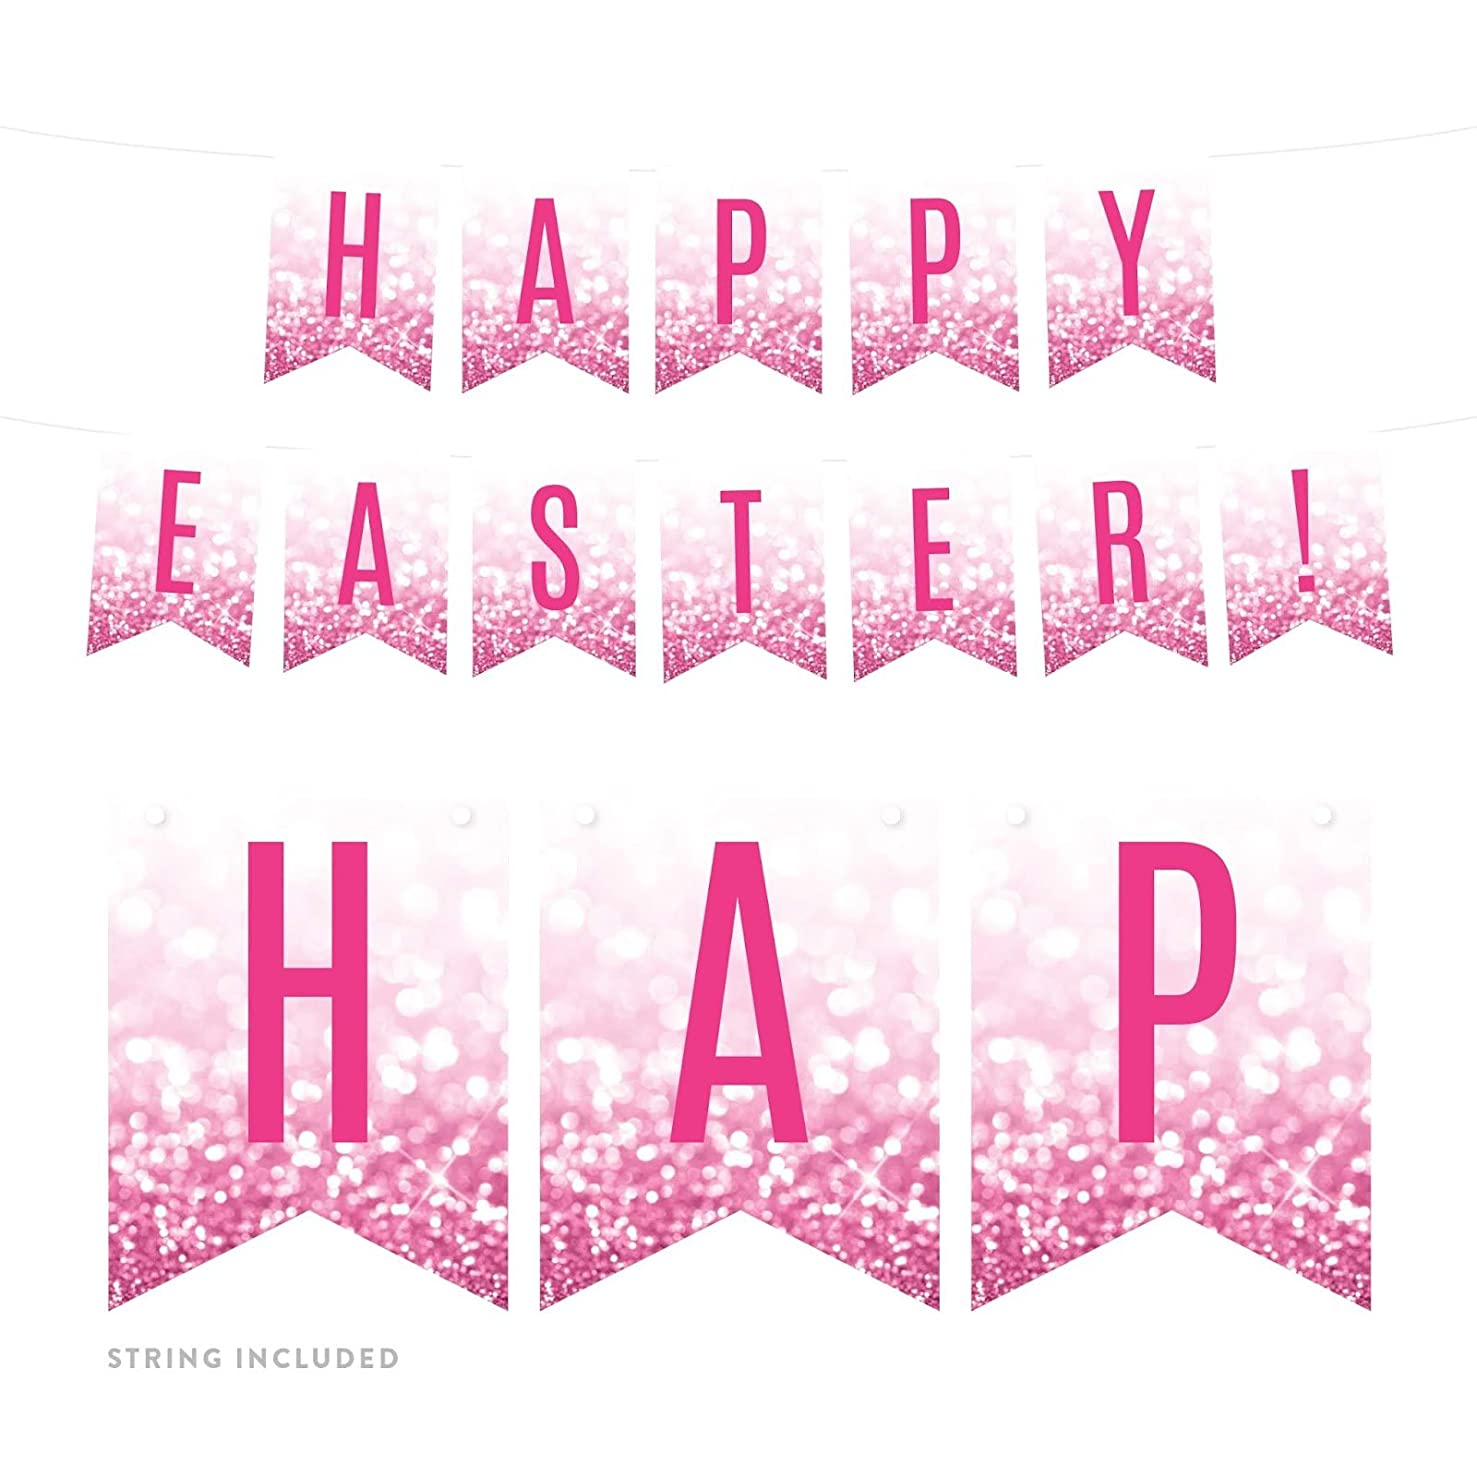 Andaz Press Faux Glitzy Pink Glitter Party Banner Decorations, Happy Easter!, Approx 5-Feet, 1-Set, Colored Hanging Pennant Decor